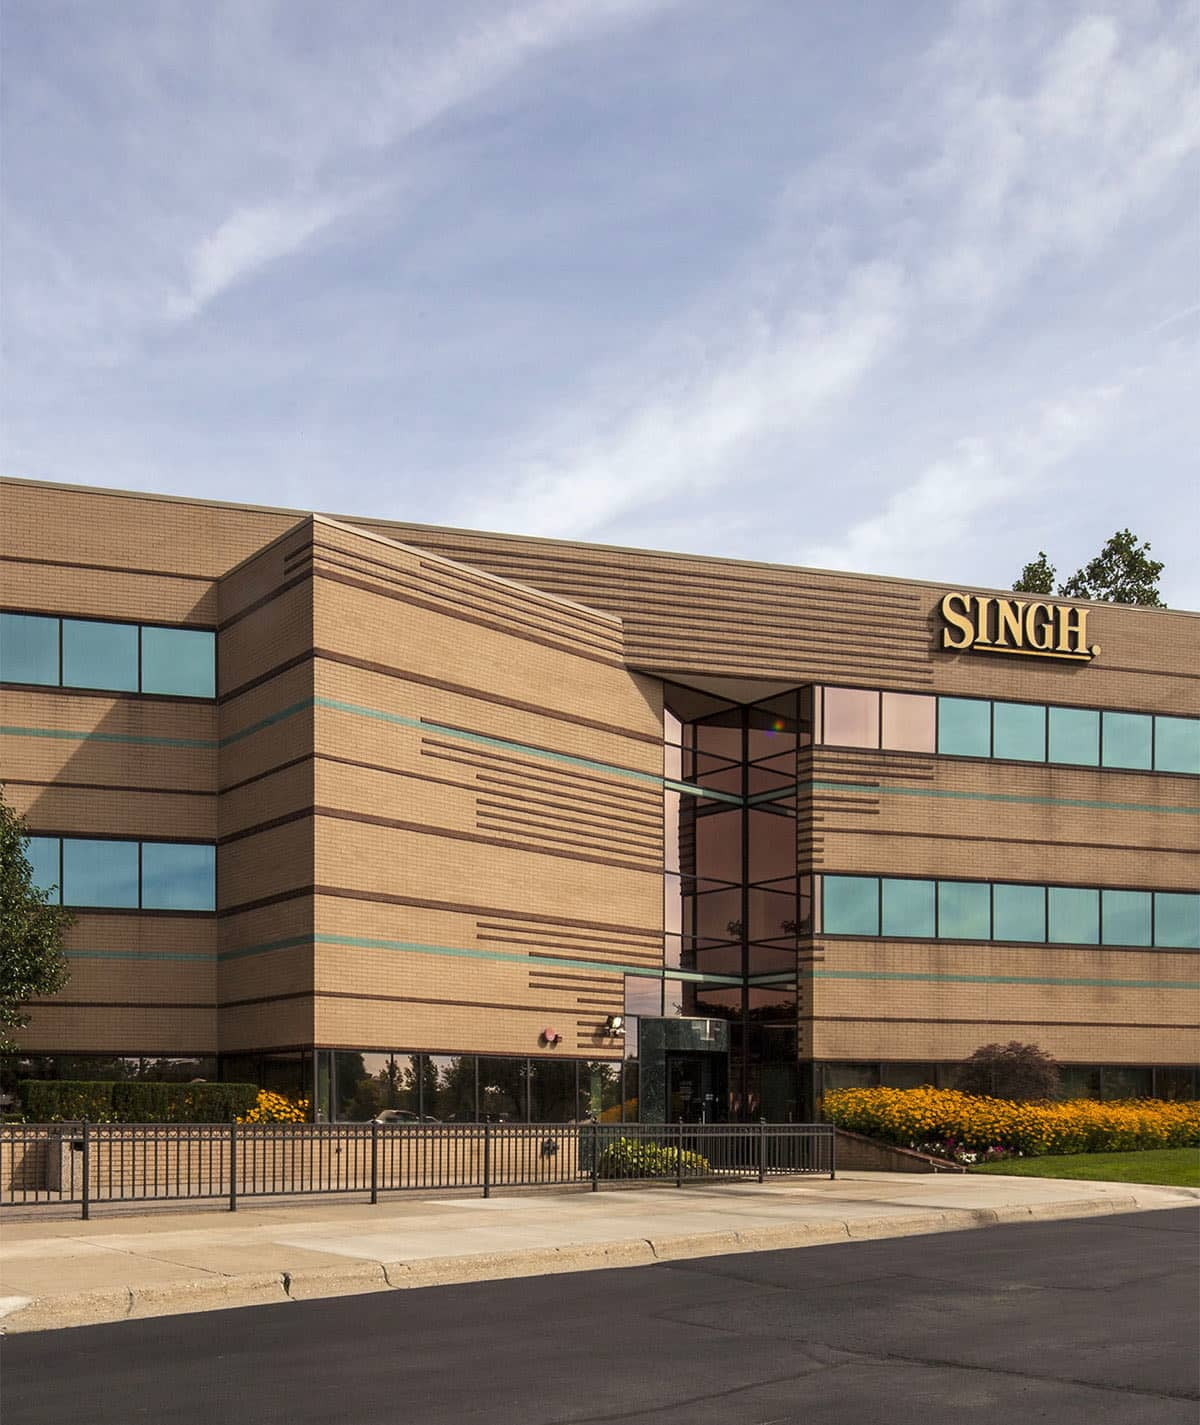 Singh Office Centre in West Bloomfield, Michigan